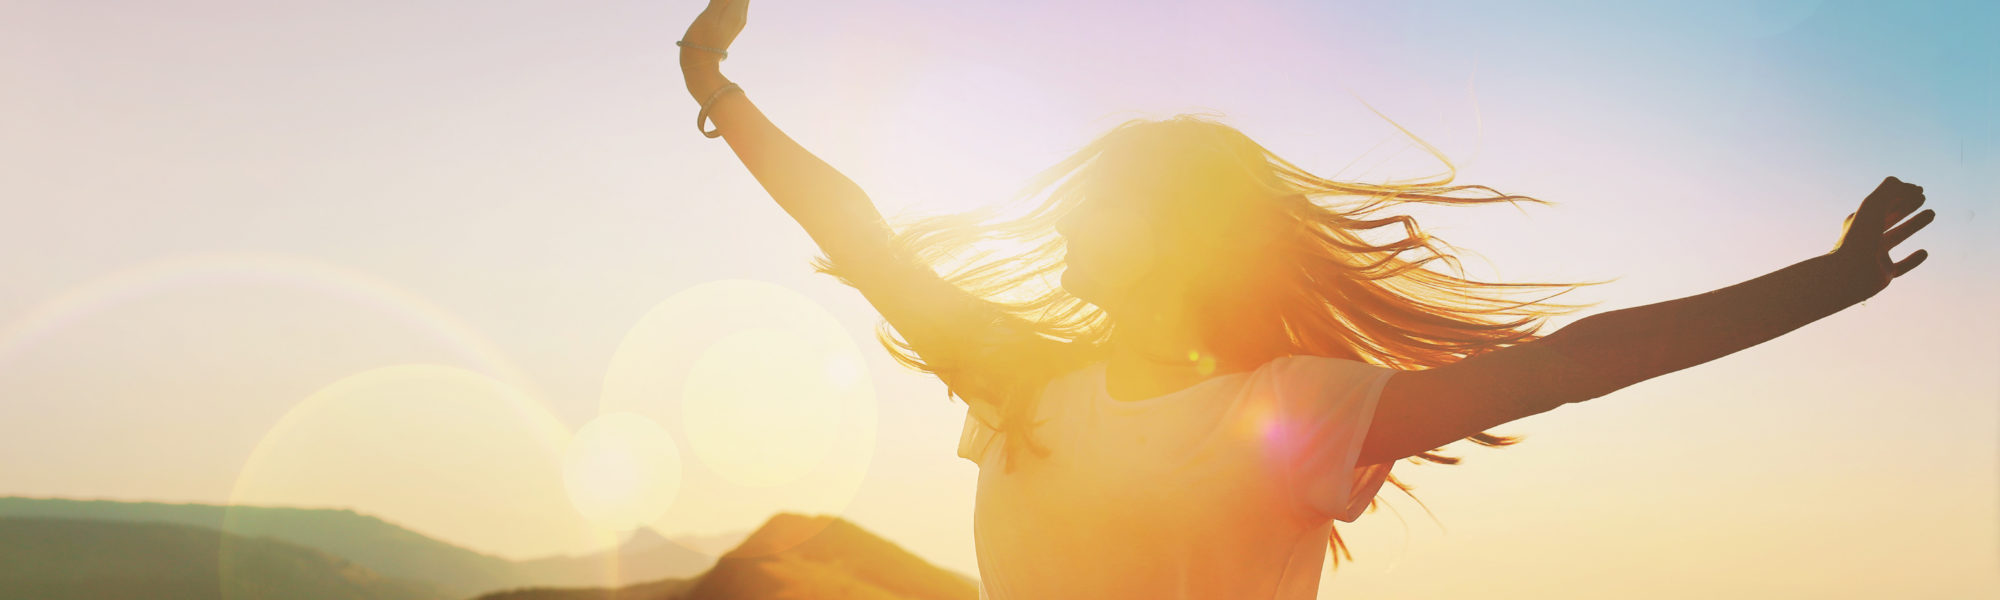 Girl on a background of mountains joyful spread her arms dancing at a height